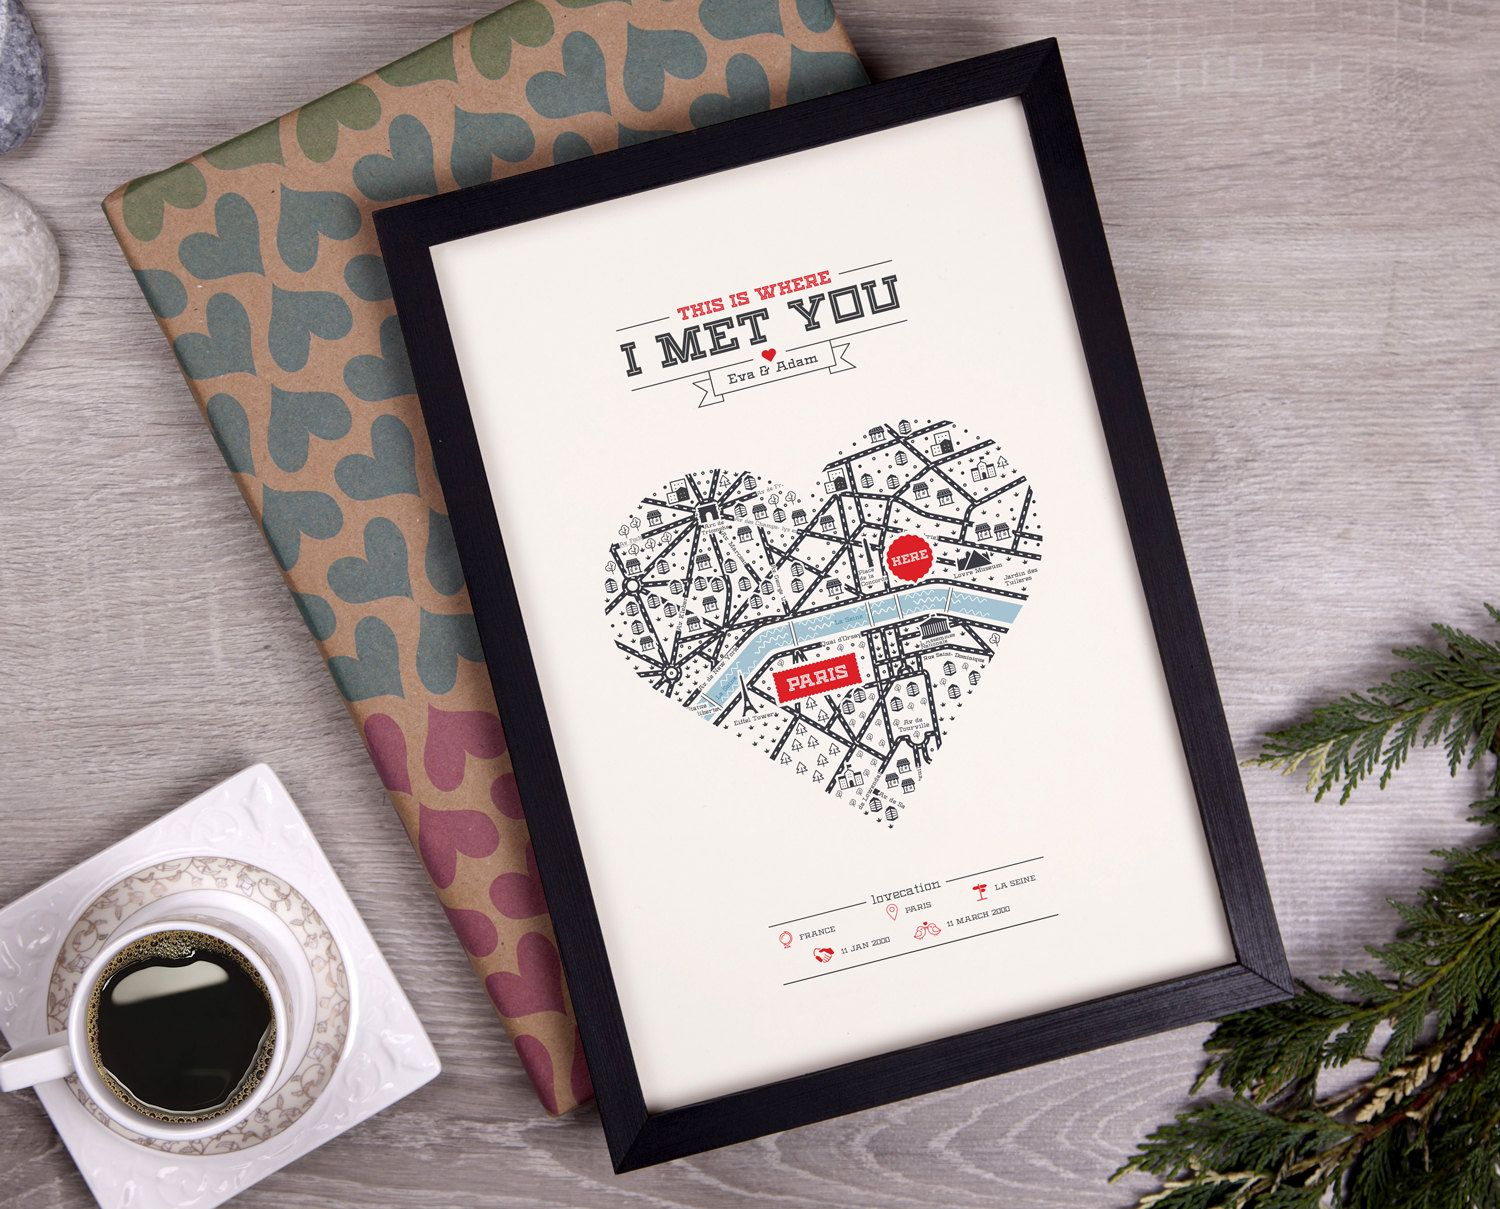 70 Year Wedding Anniversary Gifts: Personalized Map Anniversary Gift Personalized Gift Heart